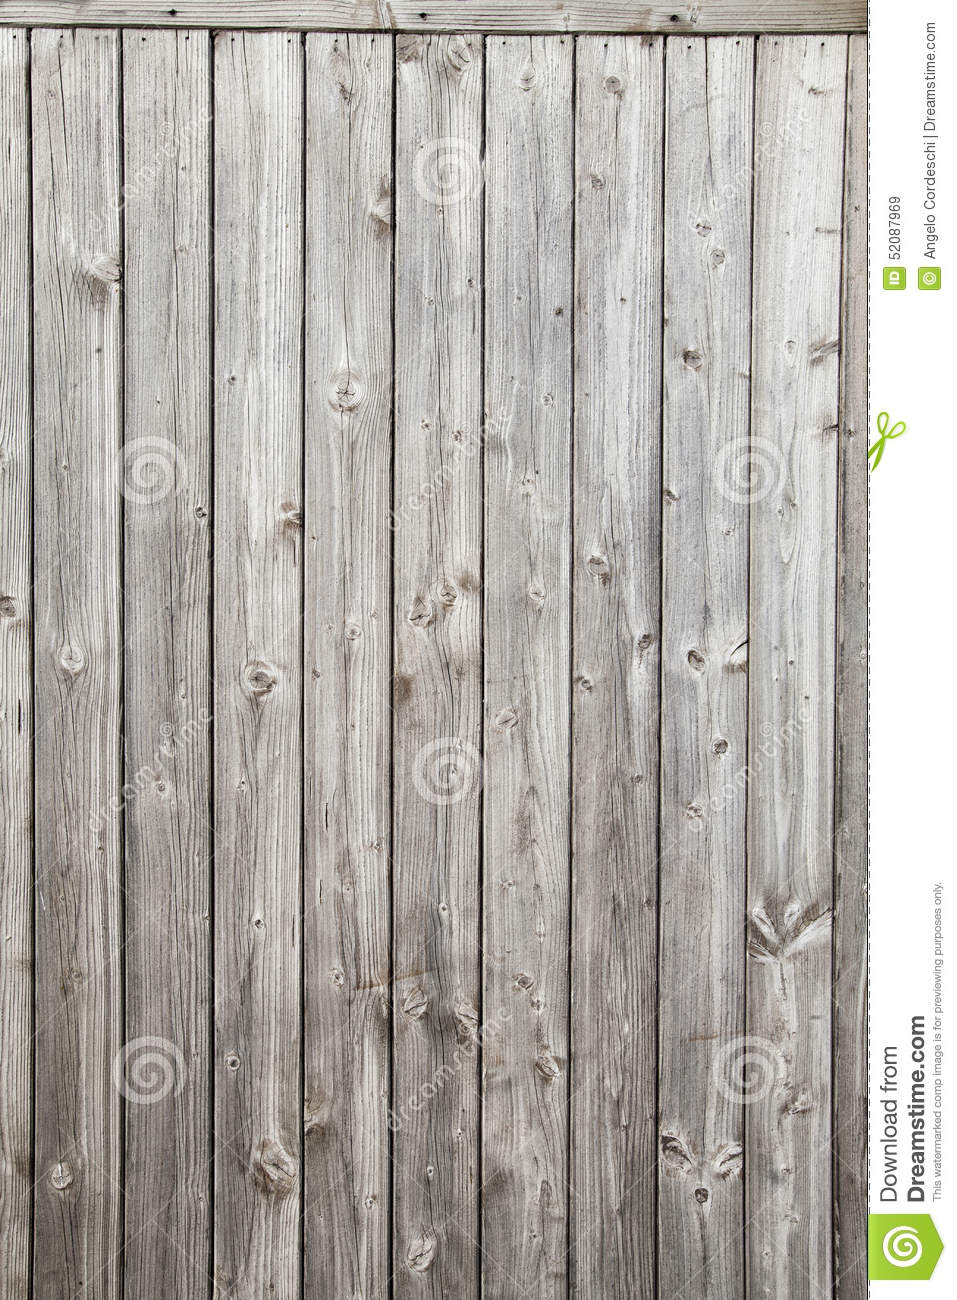 Planches en bois grises fond vertical photo stock image for Planche bois gris